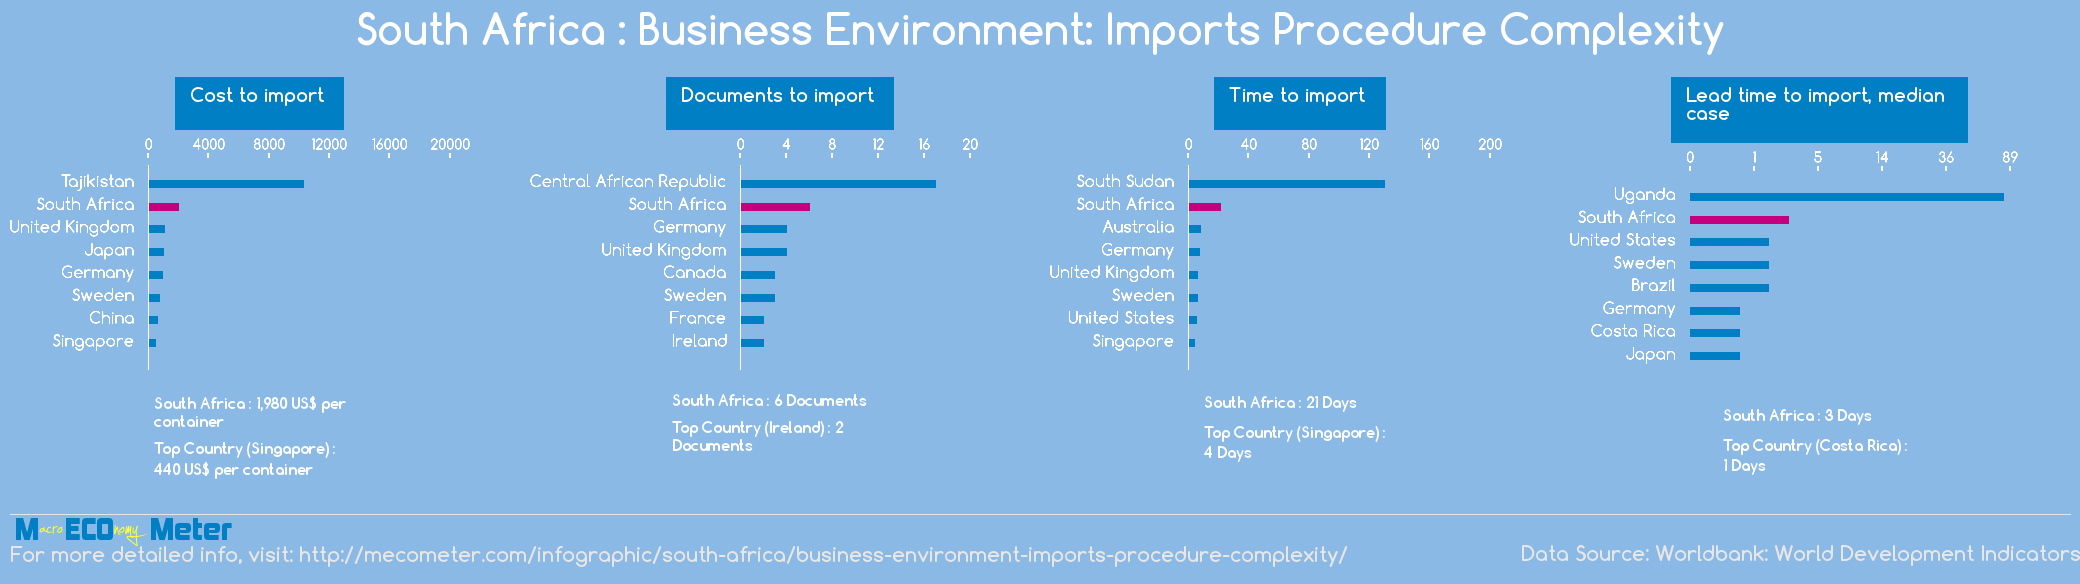 South Africa : Business Environment: Imports Procedure Complexity